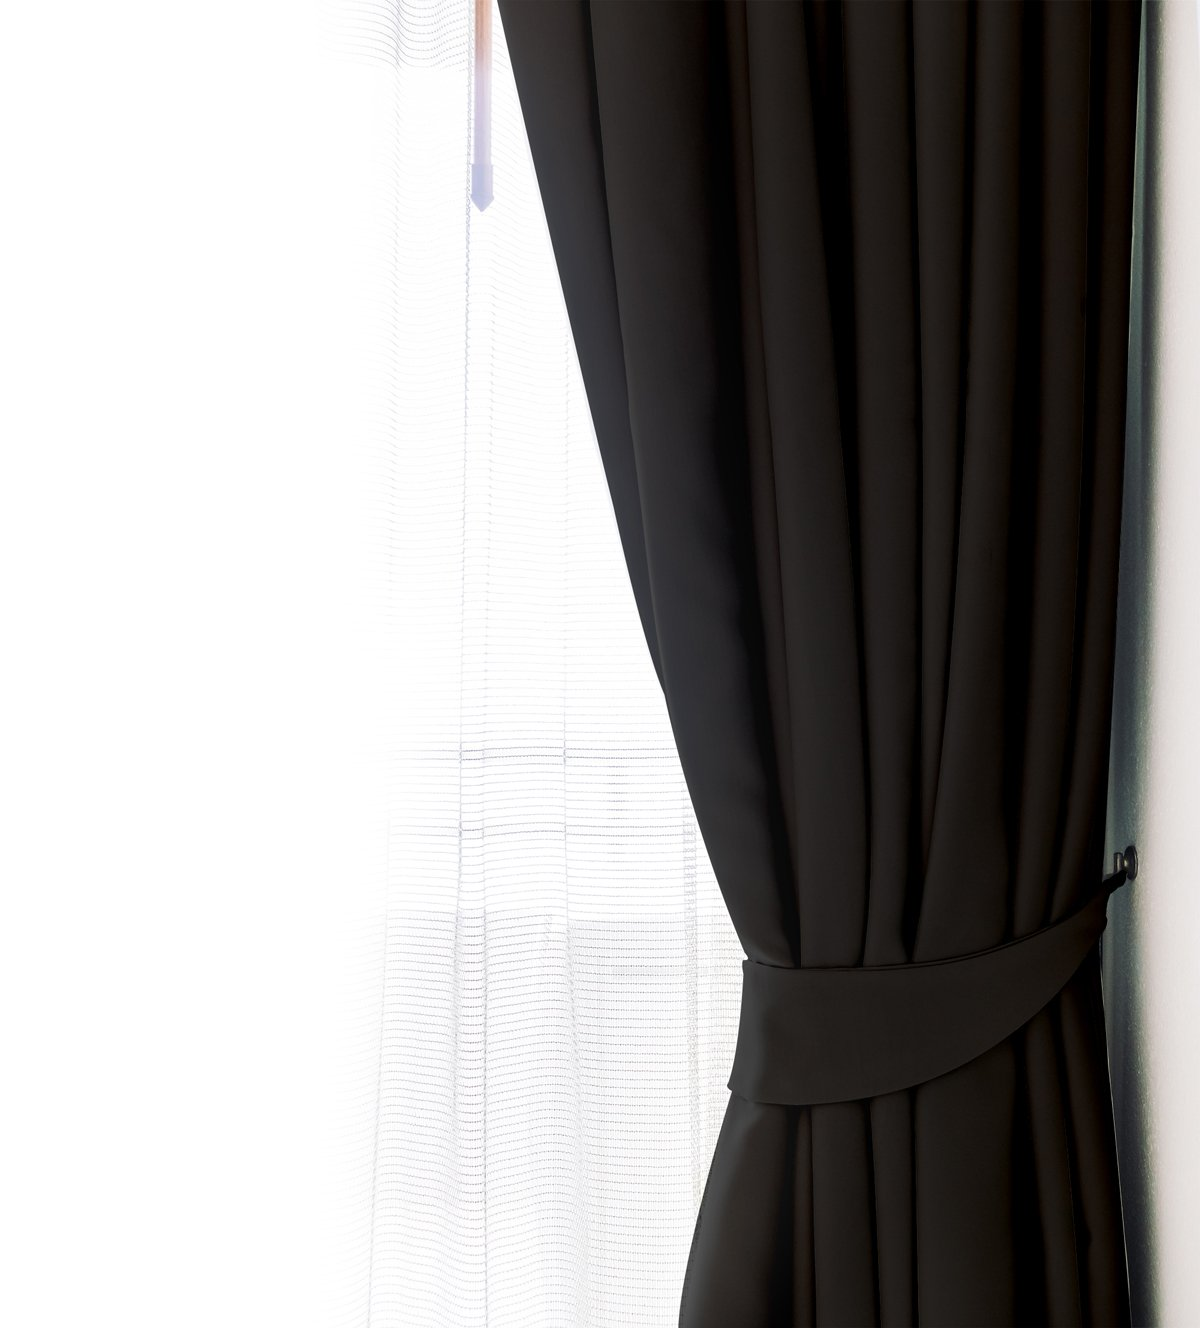 Blackout Room Darkening Curtains Window Panel Drapes Black Color